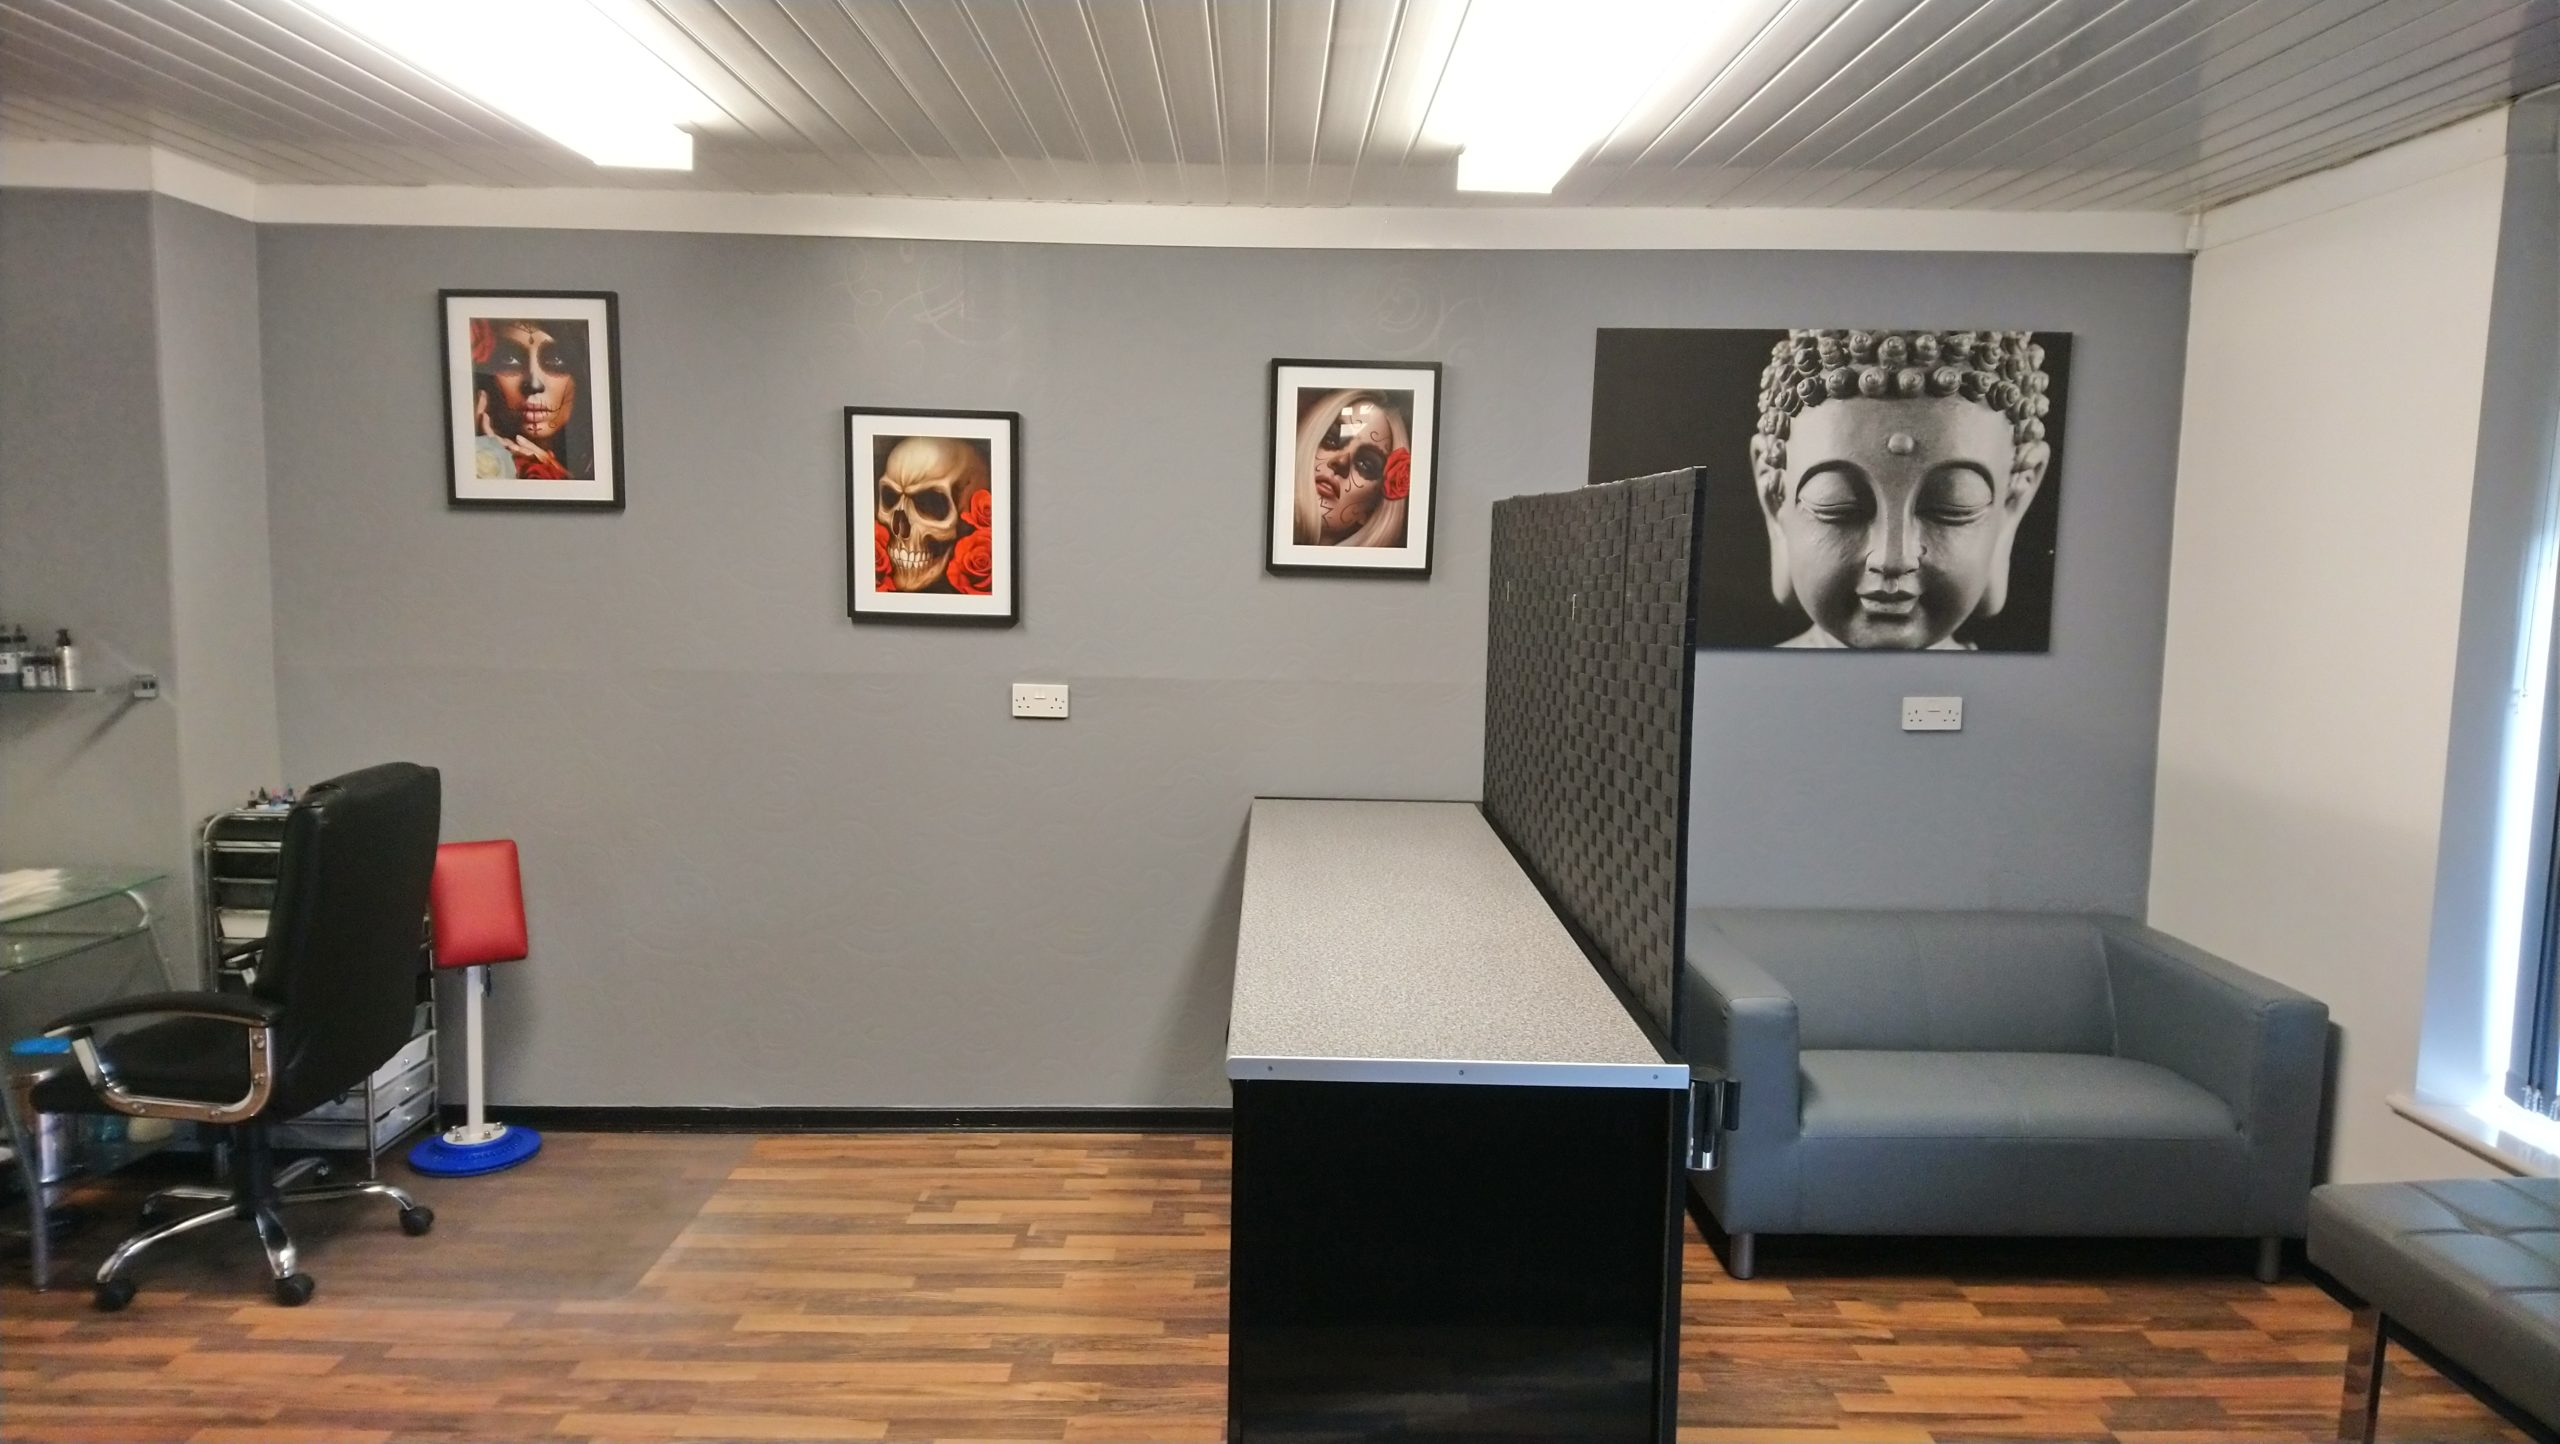 ENJOY GETTING TATTOOED IN A CLEAN AND MODERN, YET RELAXING ENVIRONMENT.